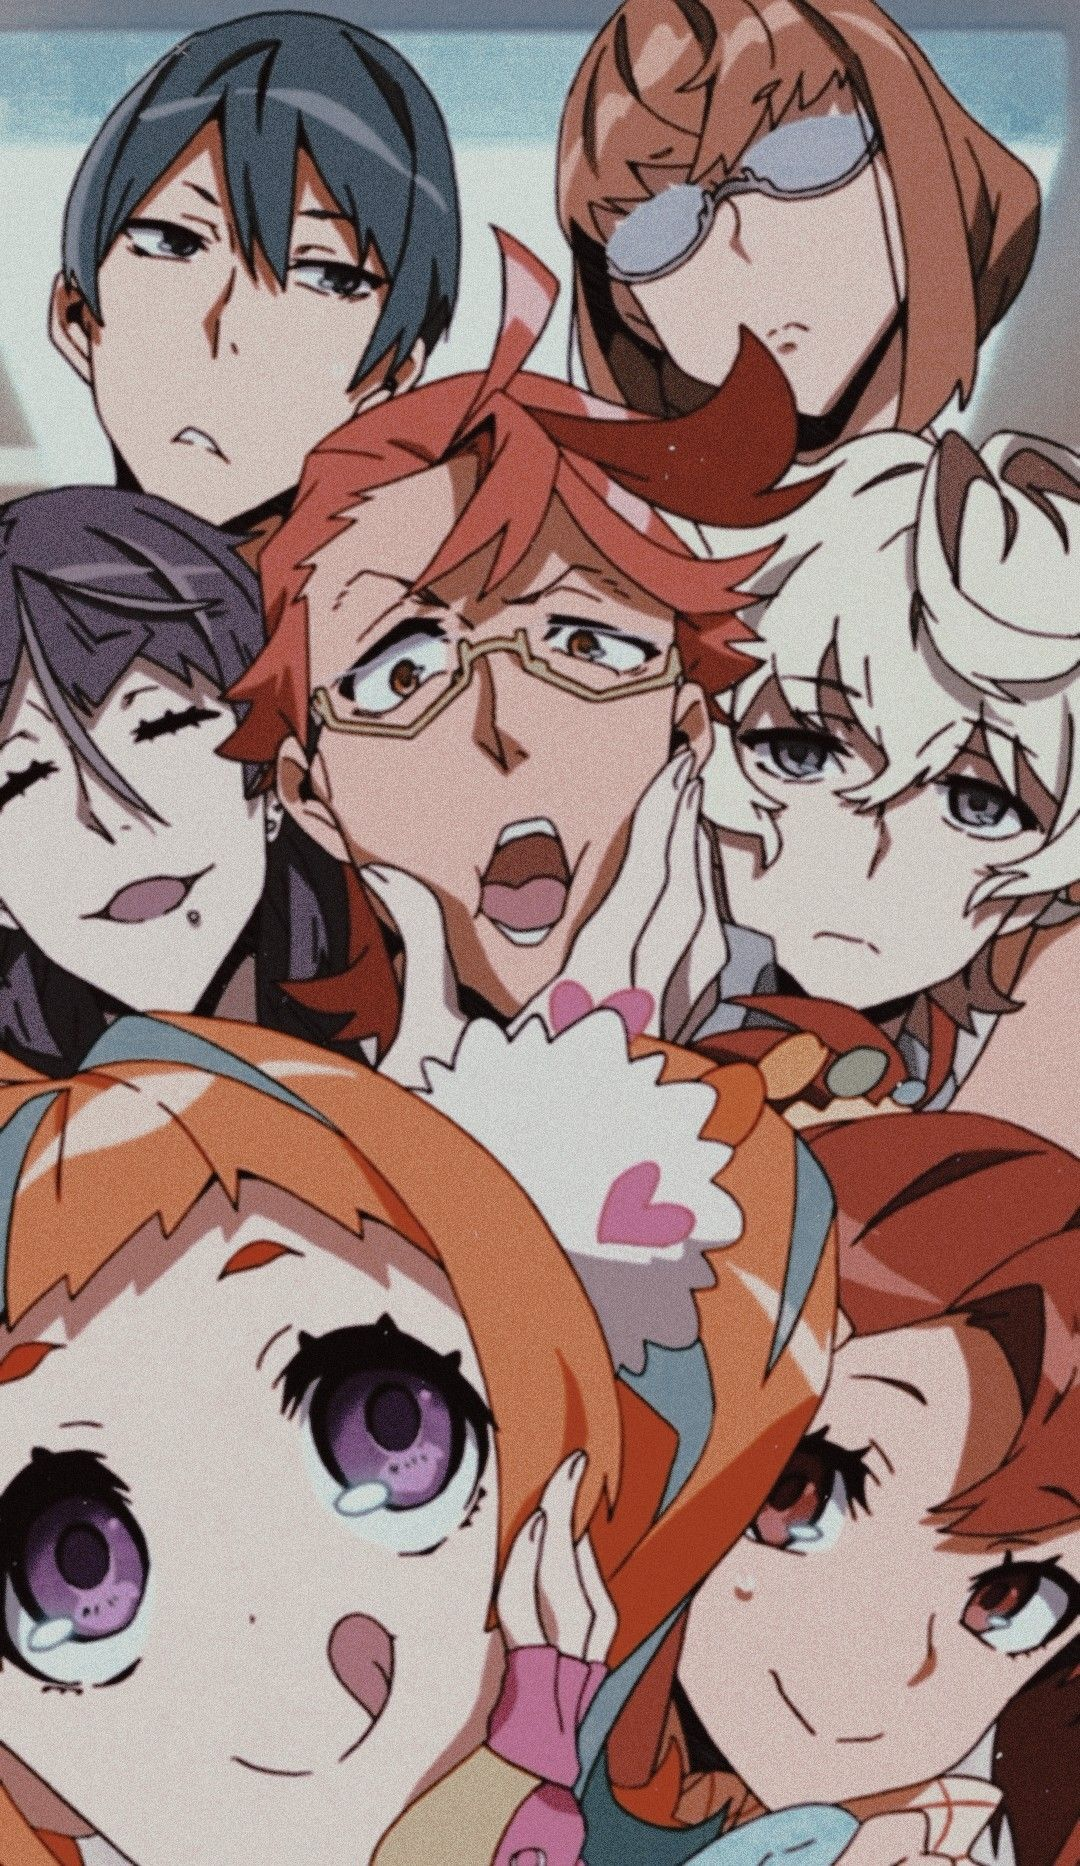 𝑲𝒊𝒛𝒏𝒂𝒊𝒗𝒆𝒓𝒔 Kiznaiver Anime Anime Anime Wallpaper